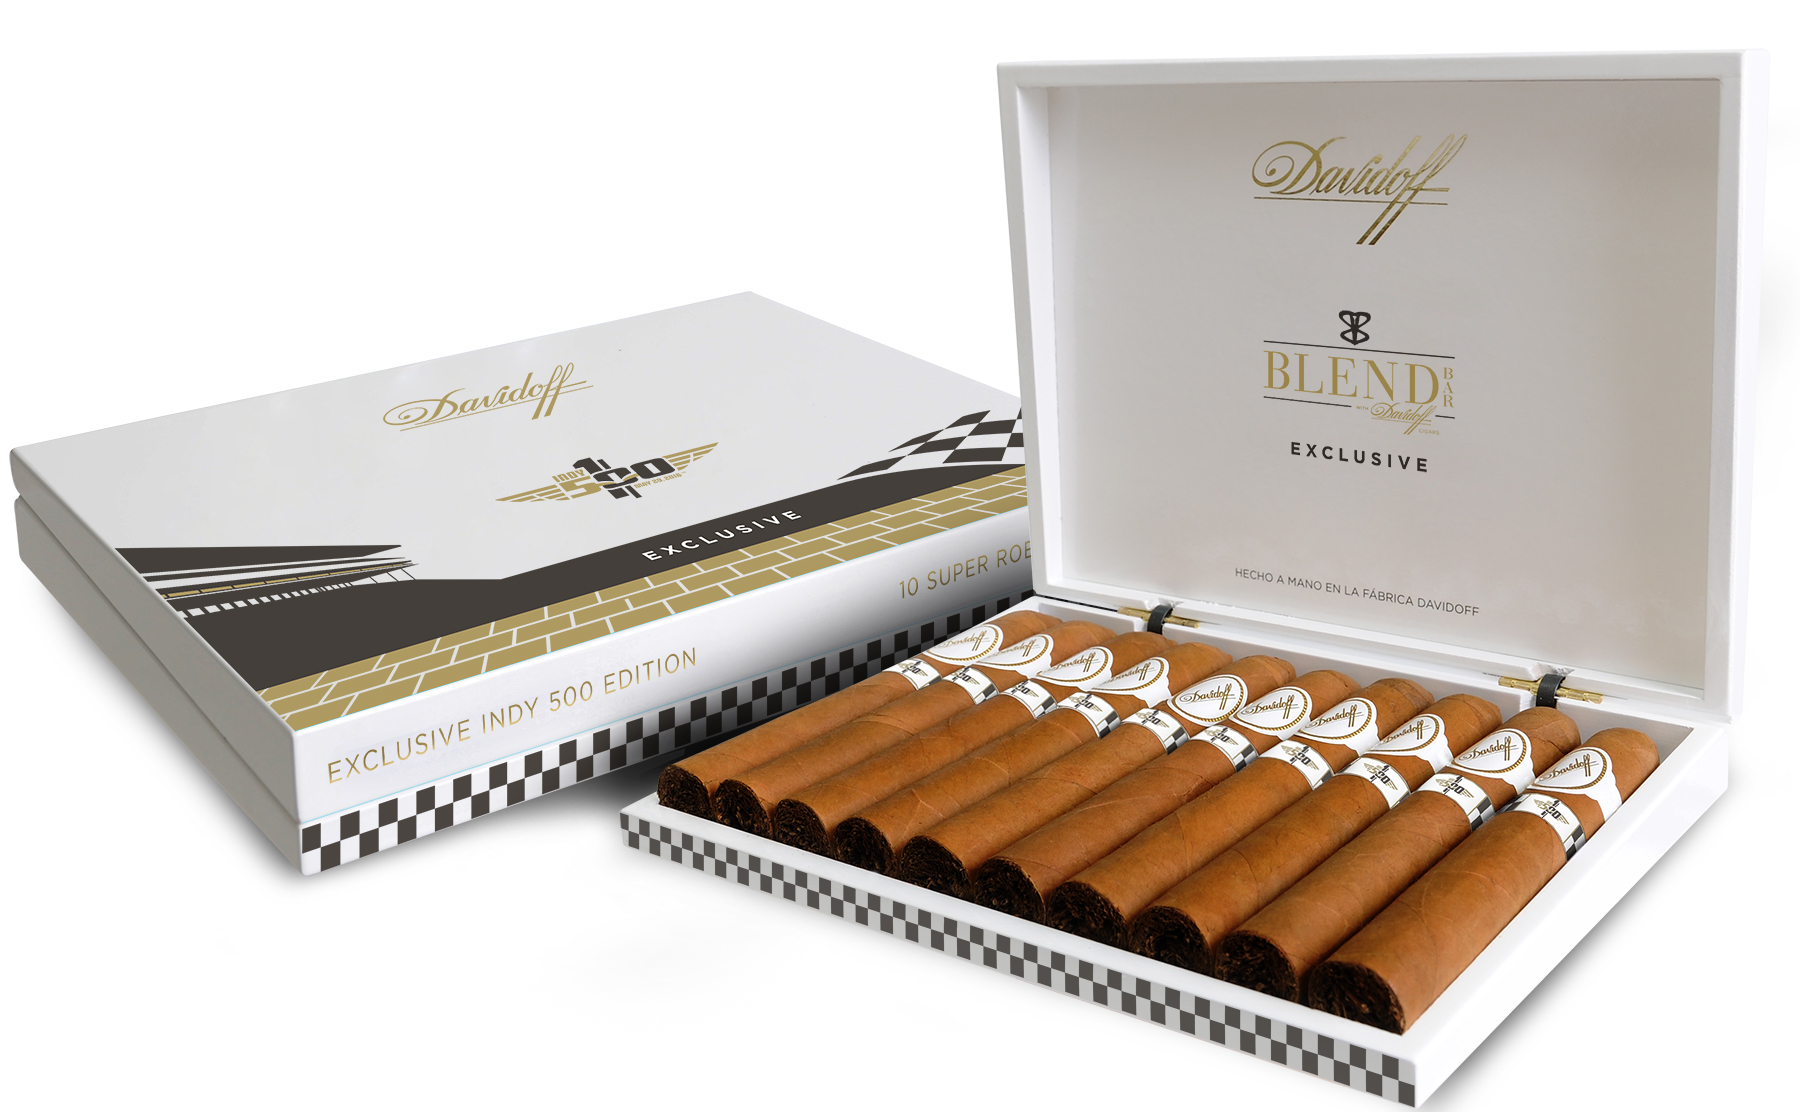 Cigar News: Davidoff Exclusive Indy 500 Edition Heading to